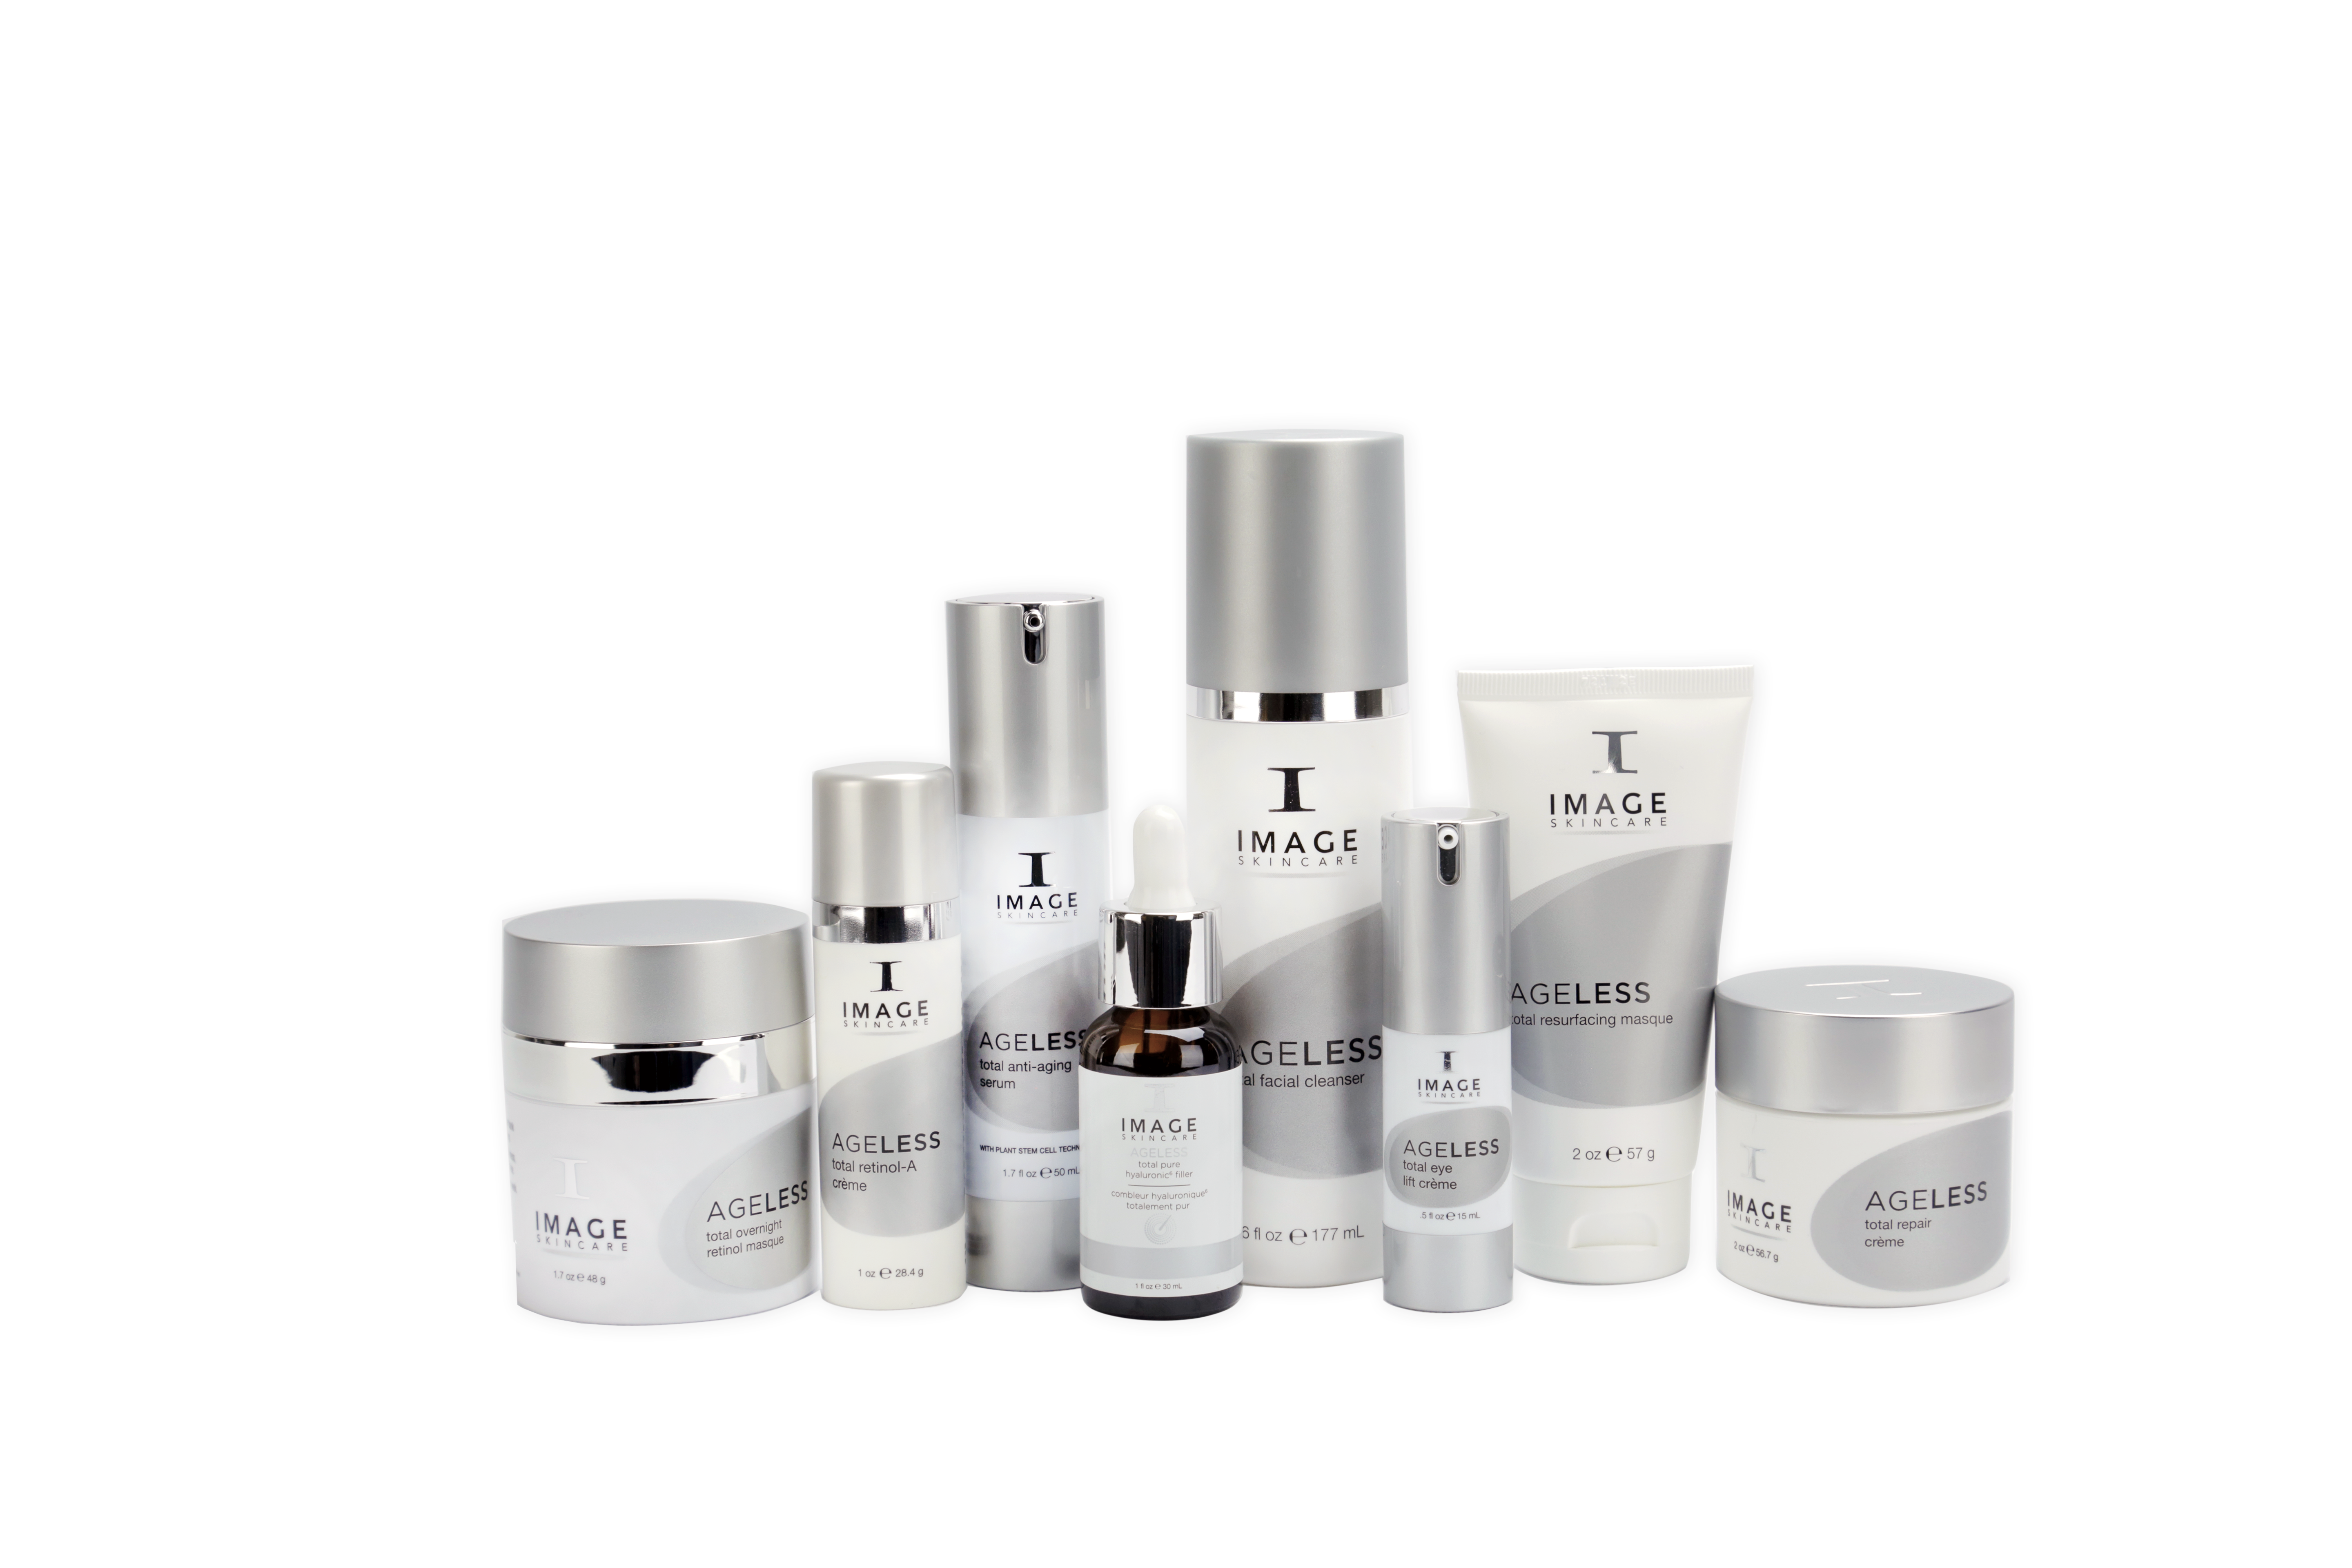 Blossom Beauty & Aesthetics Ageless Collectio